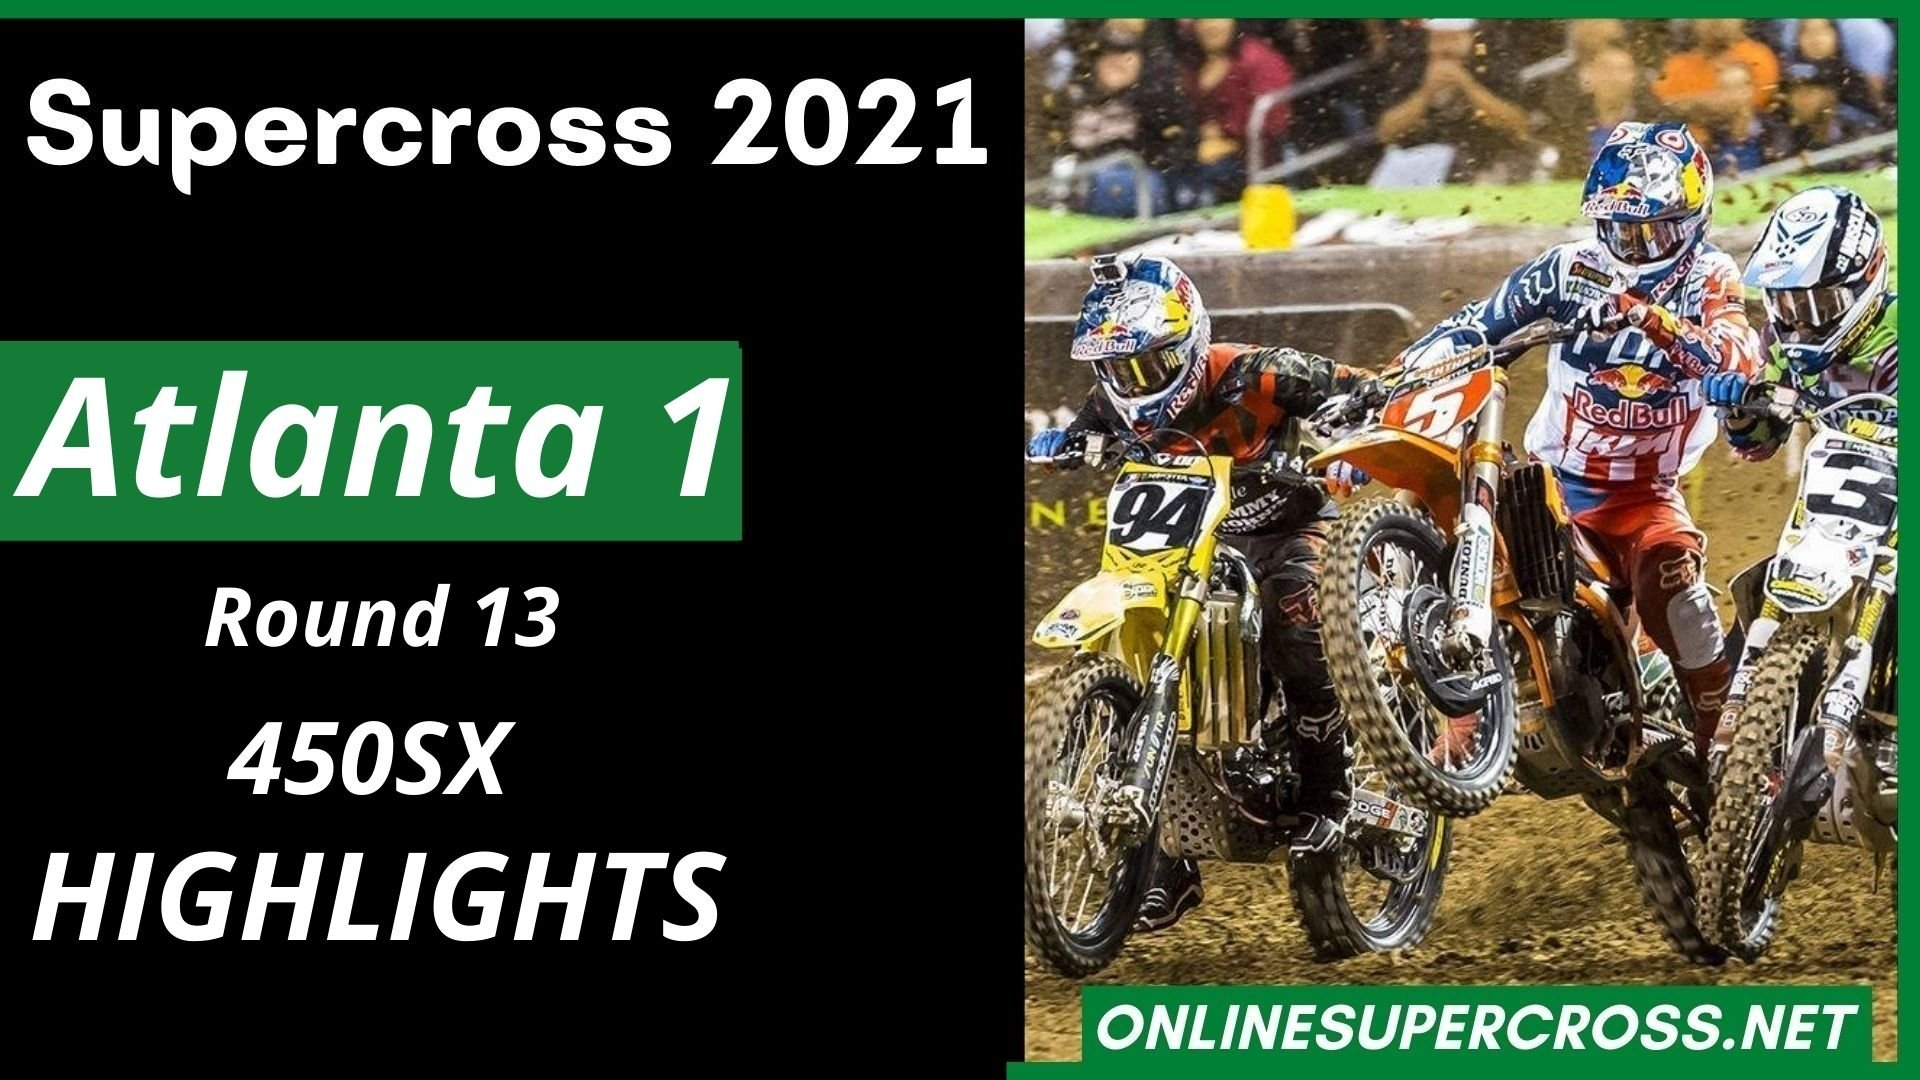 Atlanta 1 Round 13 Supercross 450SX Highlights 2021